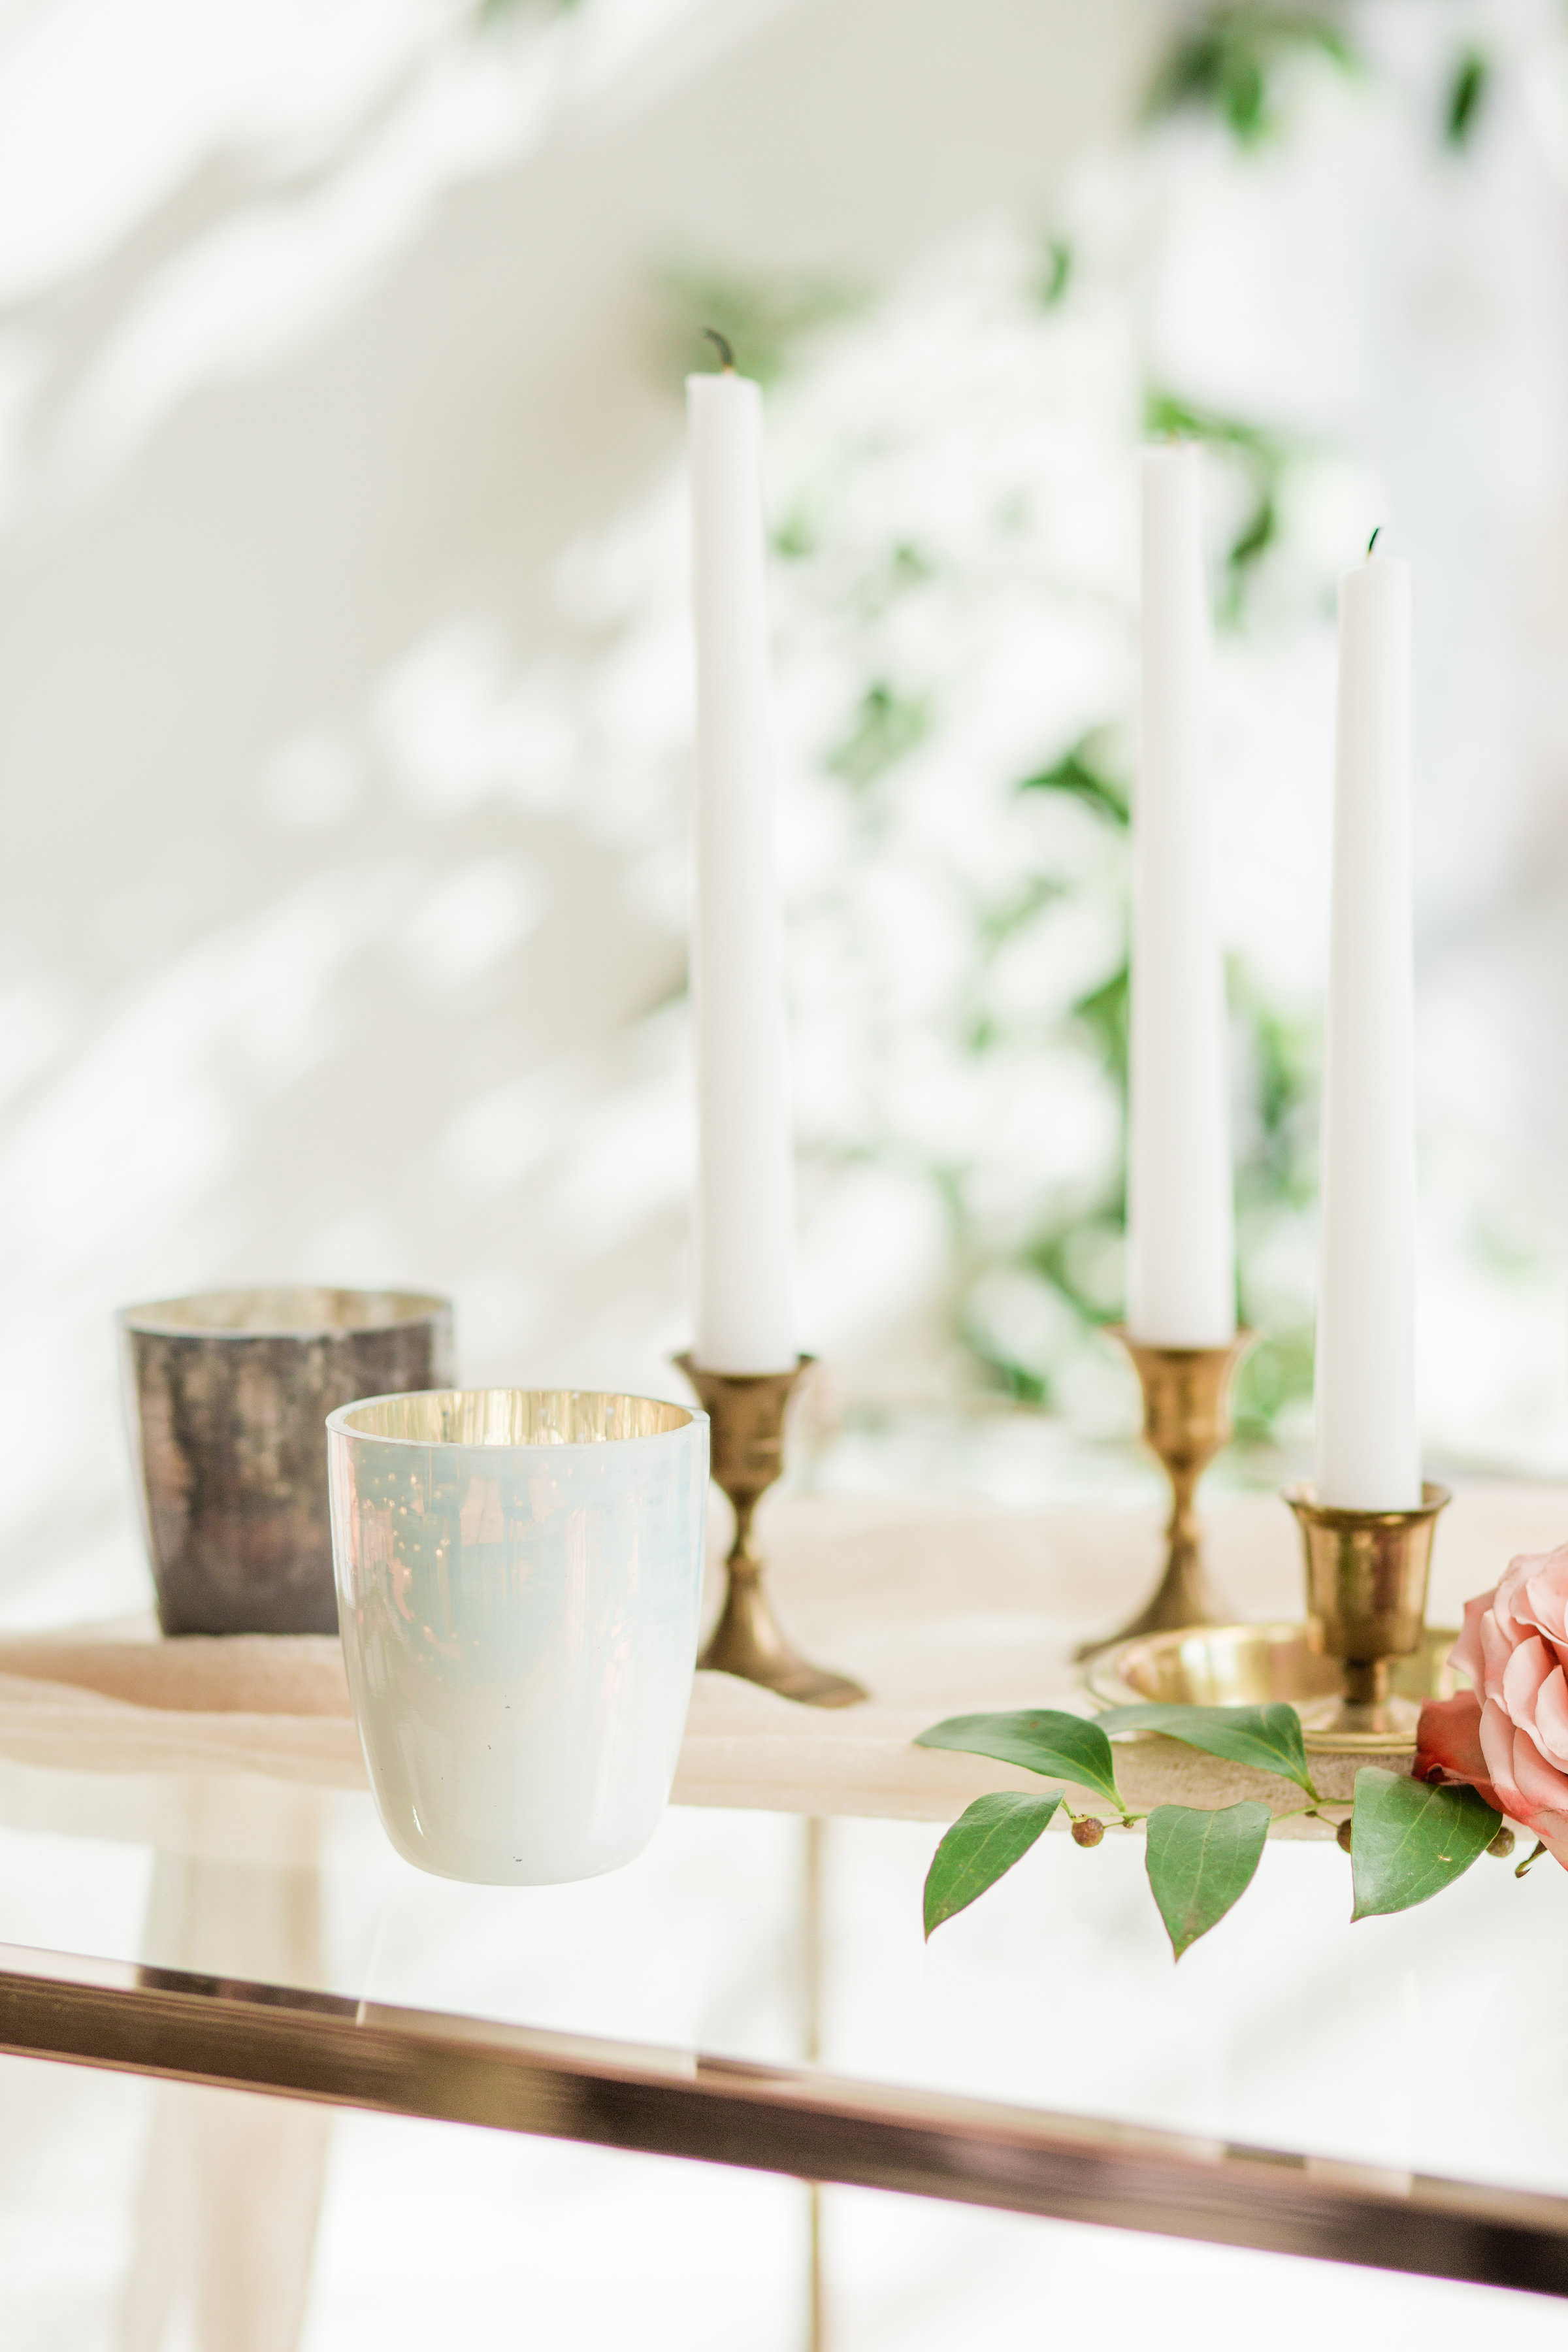 foraged home tealight votives in pastel colors